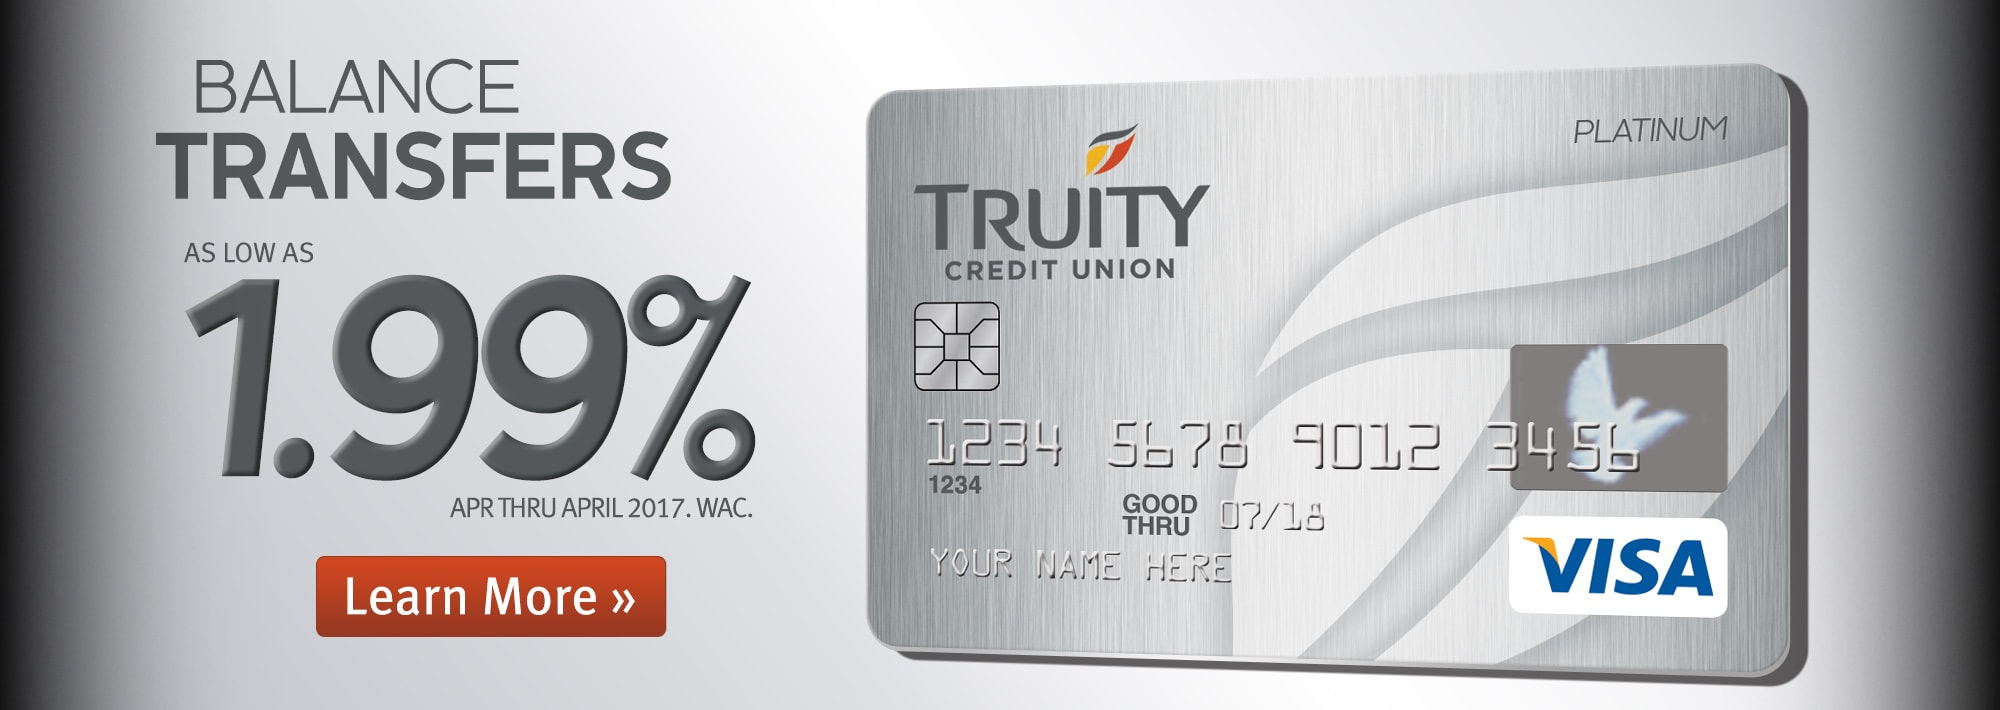 Transfer a balance to your Truity Visa Card as low as 1.99% APR/WAC thru April 2017.